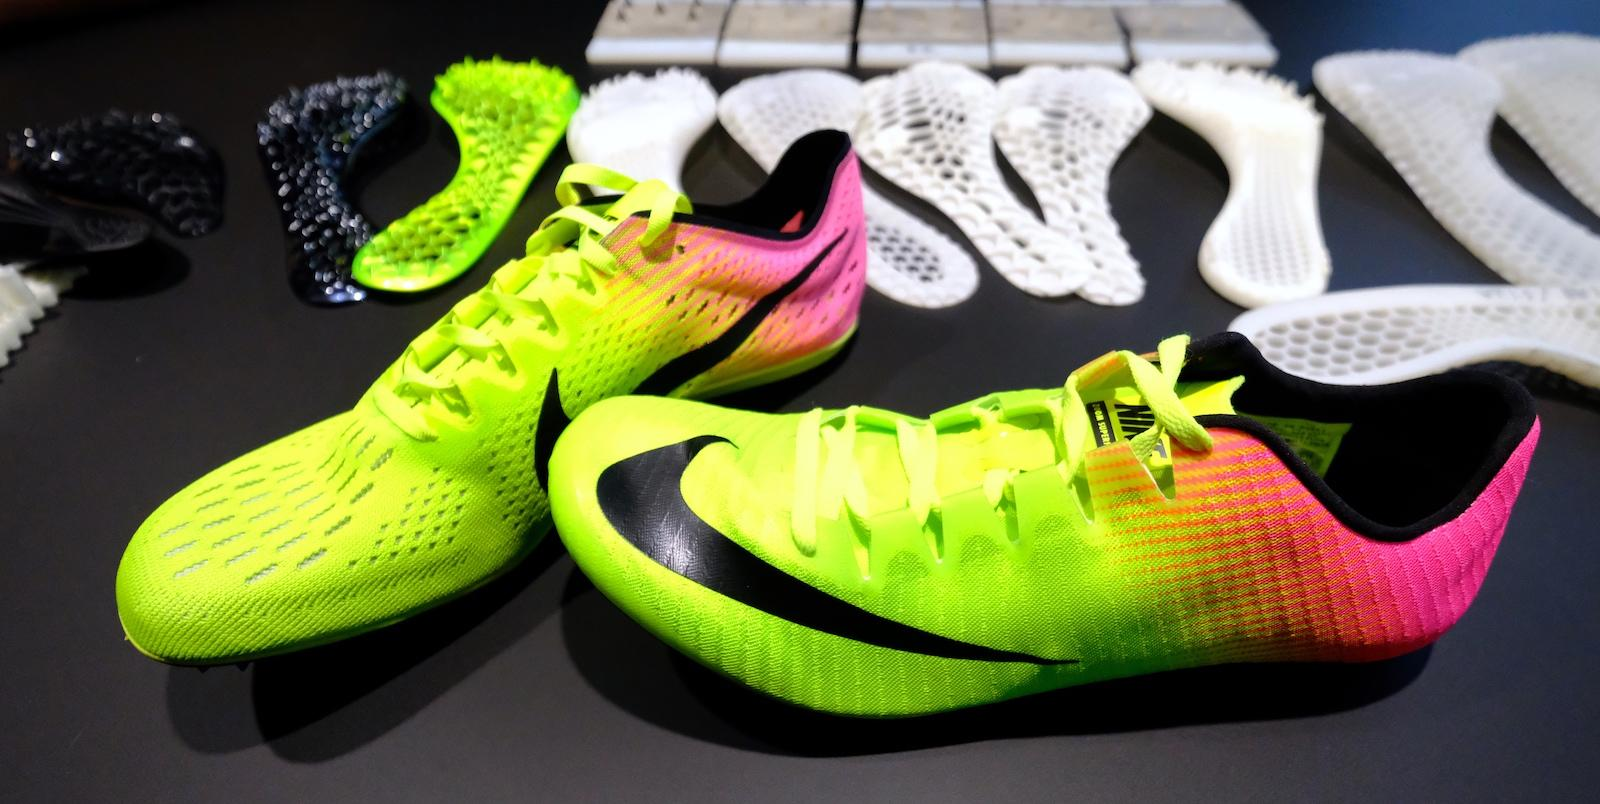 Nike Used 3d Printing And Olympic Sprinters To Design Its New Track Shoe Engadget